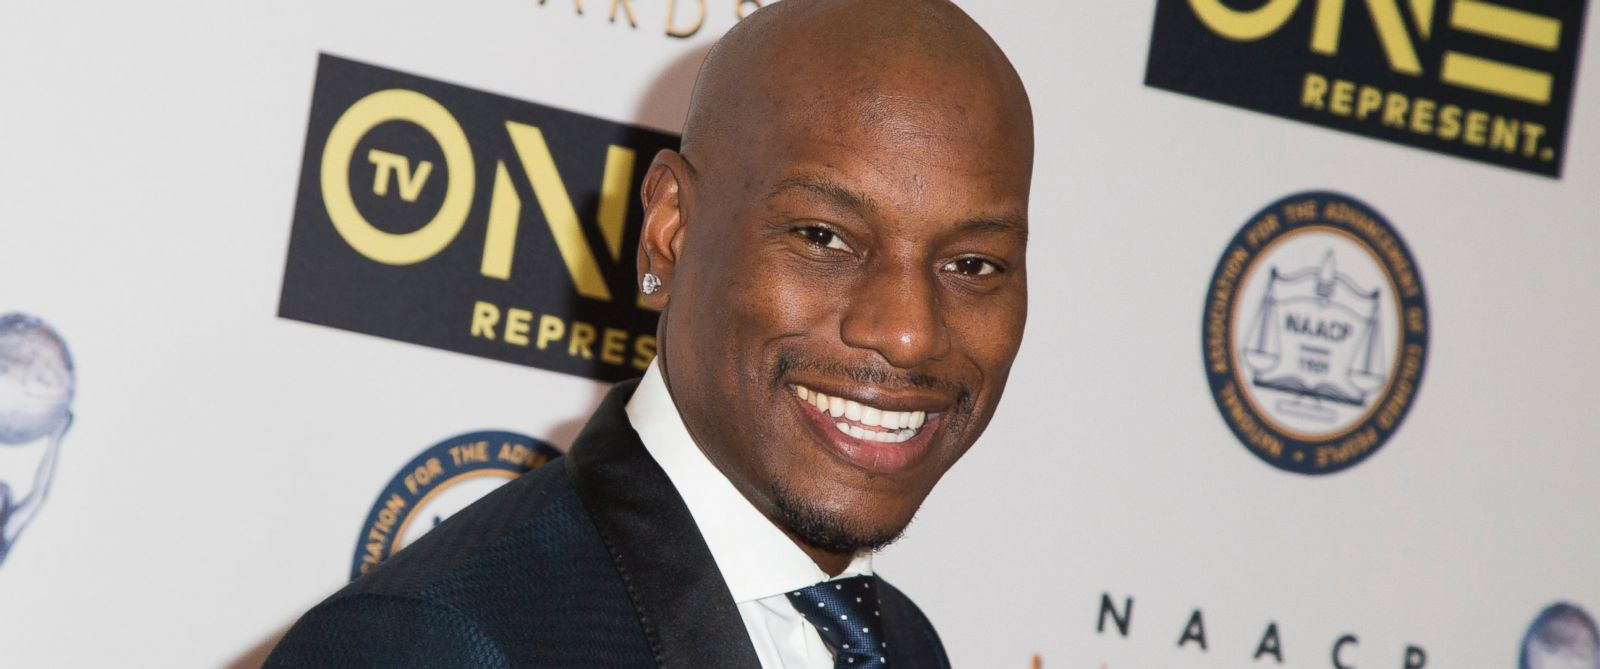 PHOTO: Tyrese Gibson attends the 47th NAACP Image Awards Nominees luncheon on Jan. 23, 2016 in Beverly Hills, Calif.